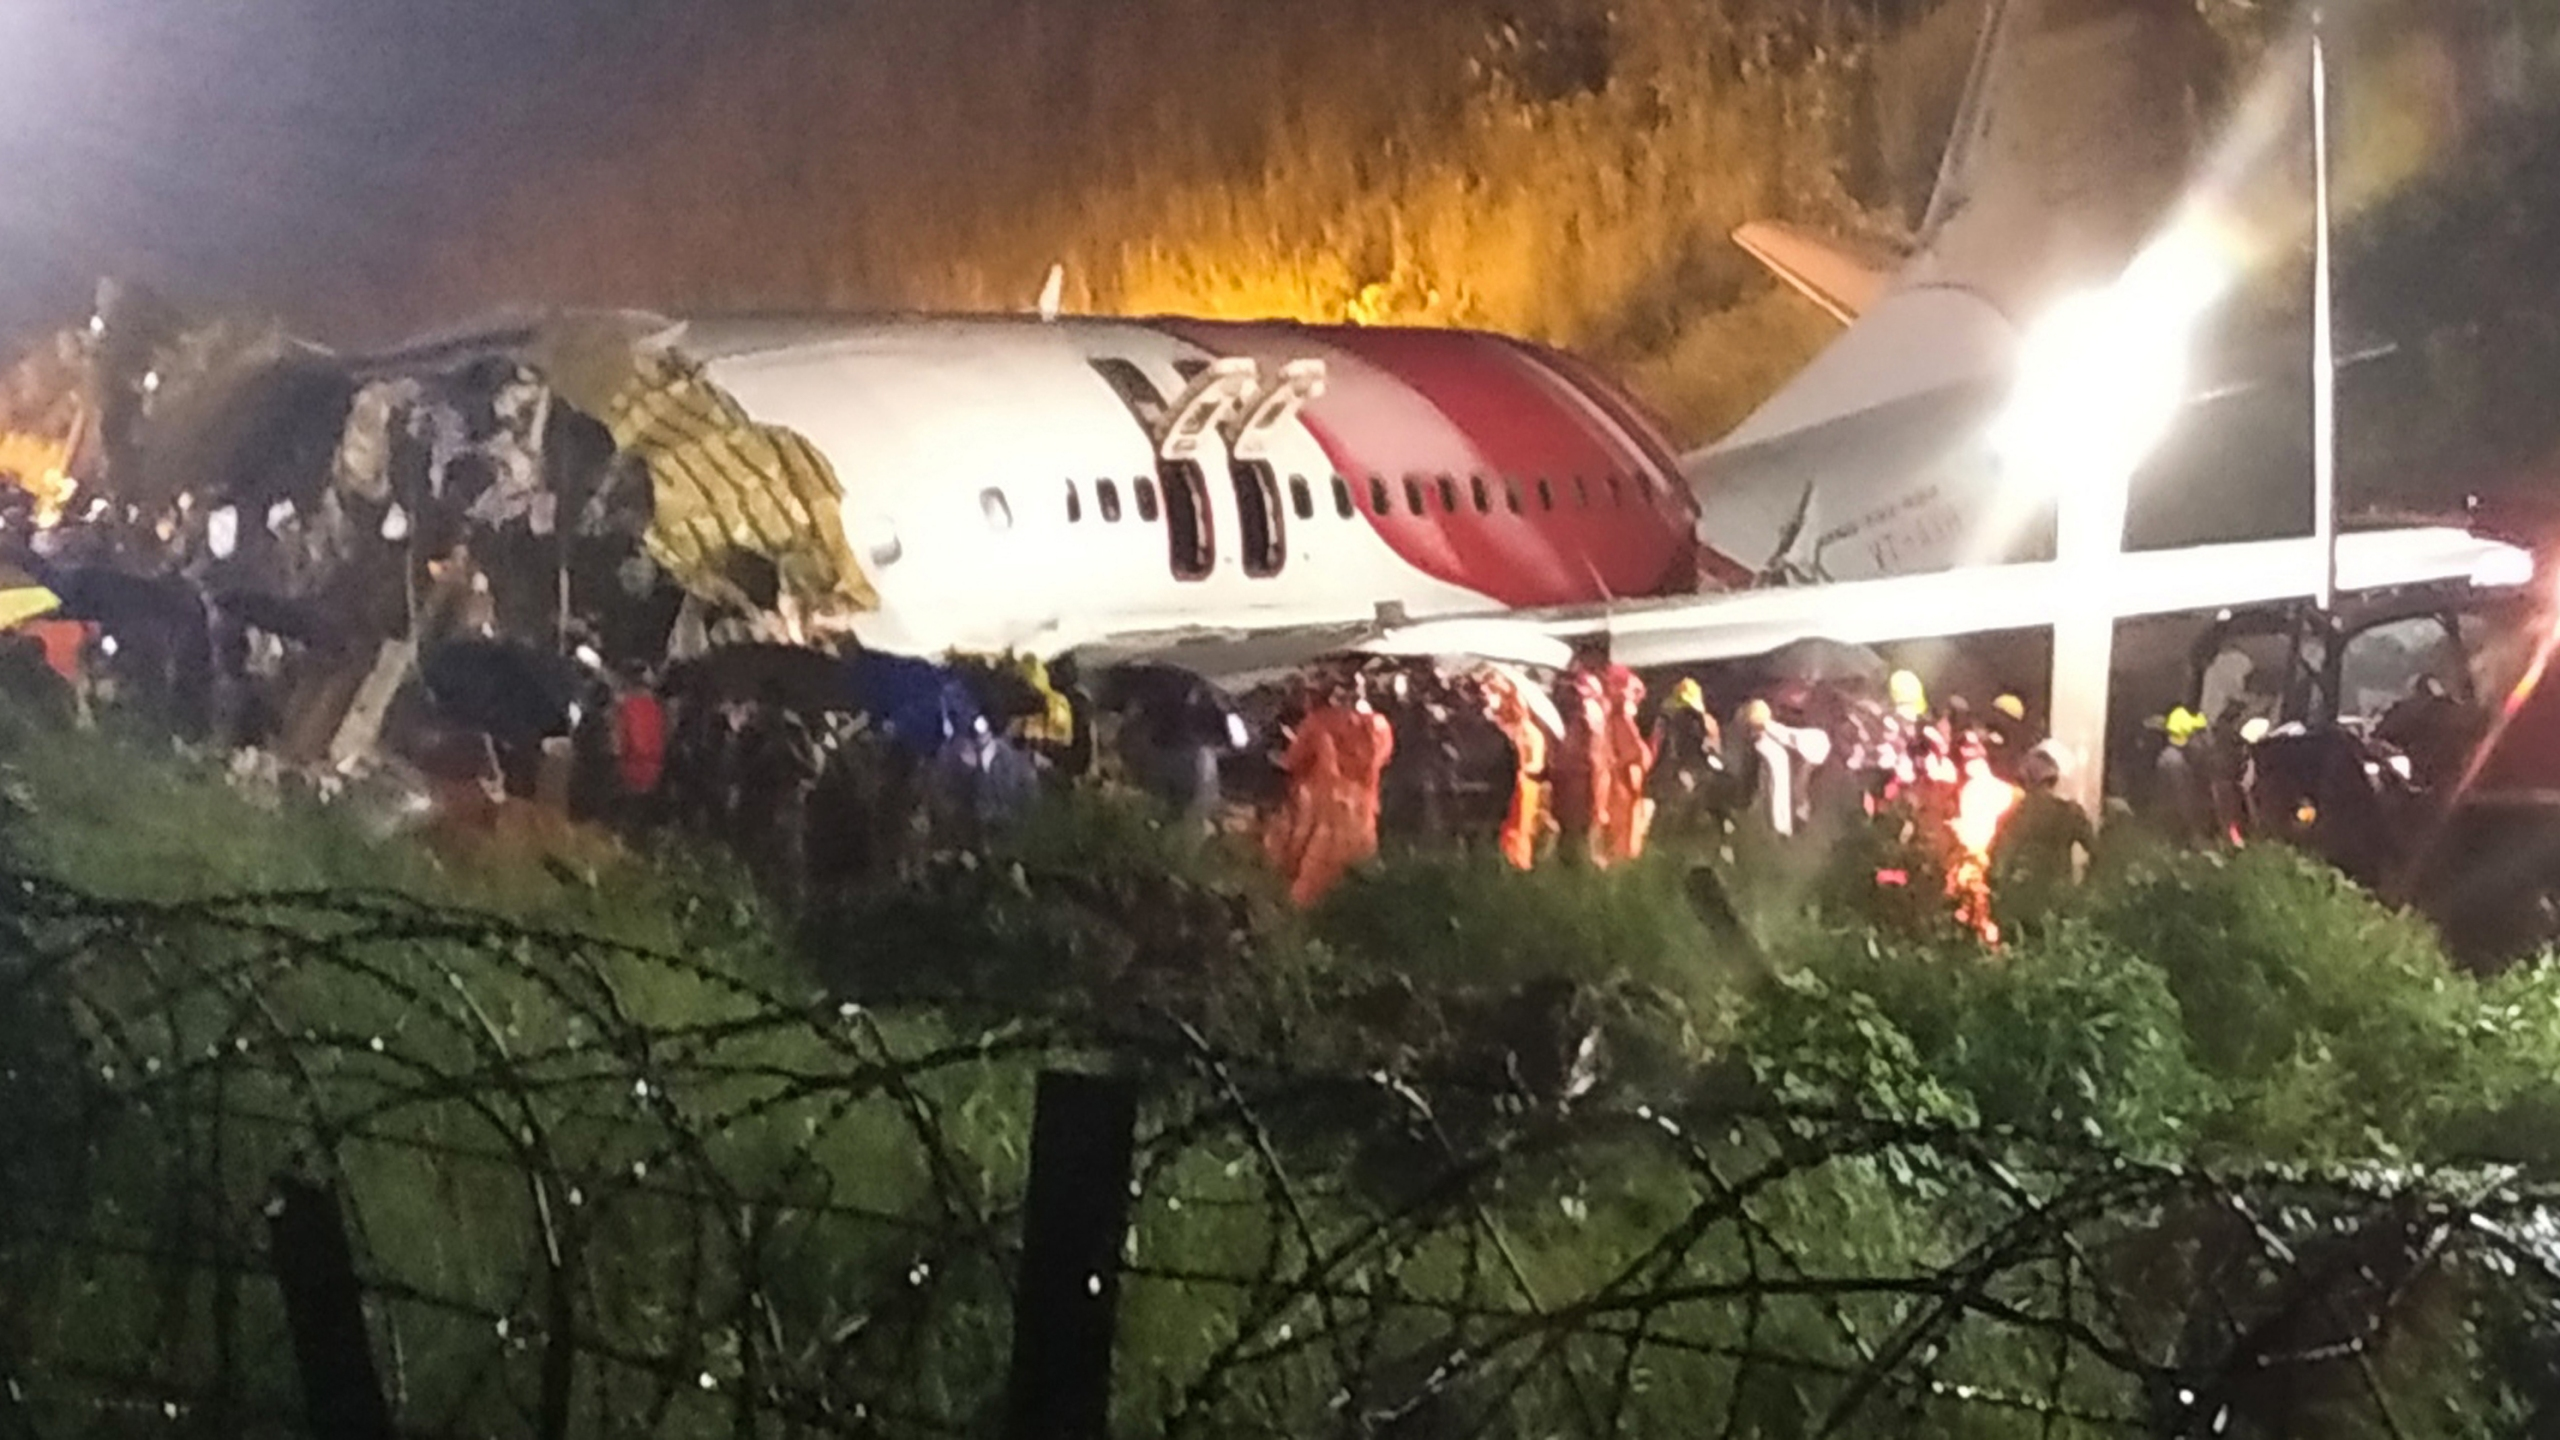 First responders gather around the wreckage of an Air India Express jet, which was carrying more than 190 passengers and crew from Dubai, after it crashed by overshooting the runway at Calicut International Airport in Karipur, Kerala, on August 7, 2020. (AFP via Getty Images)